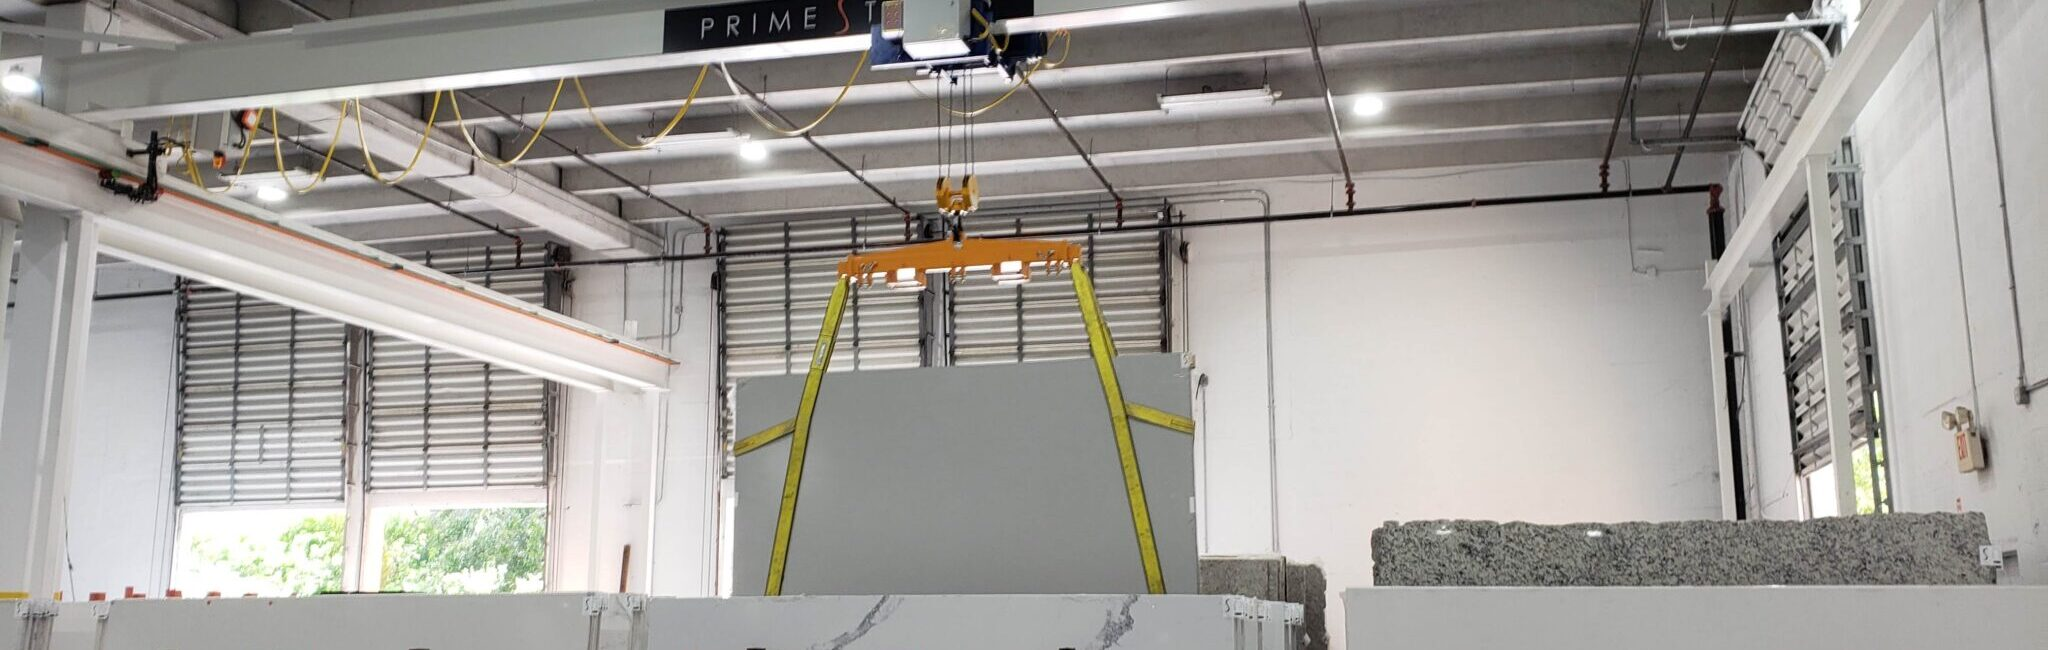 Overhead Crane manufactured by Material Handling Systems, Inc. (MHS CRANE) picking up a marble slab with lifting slings